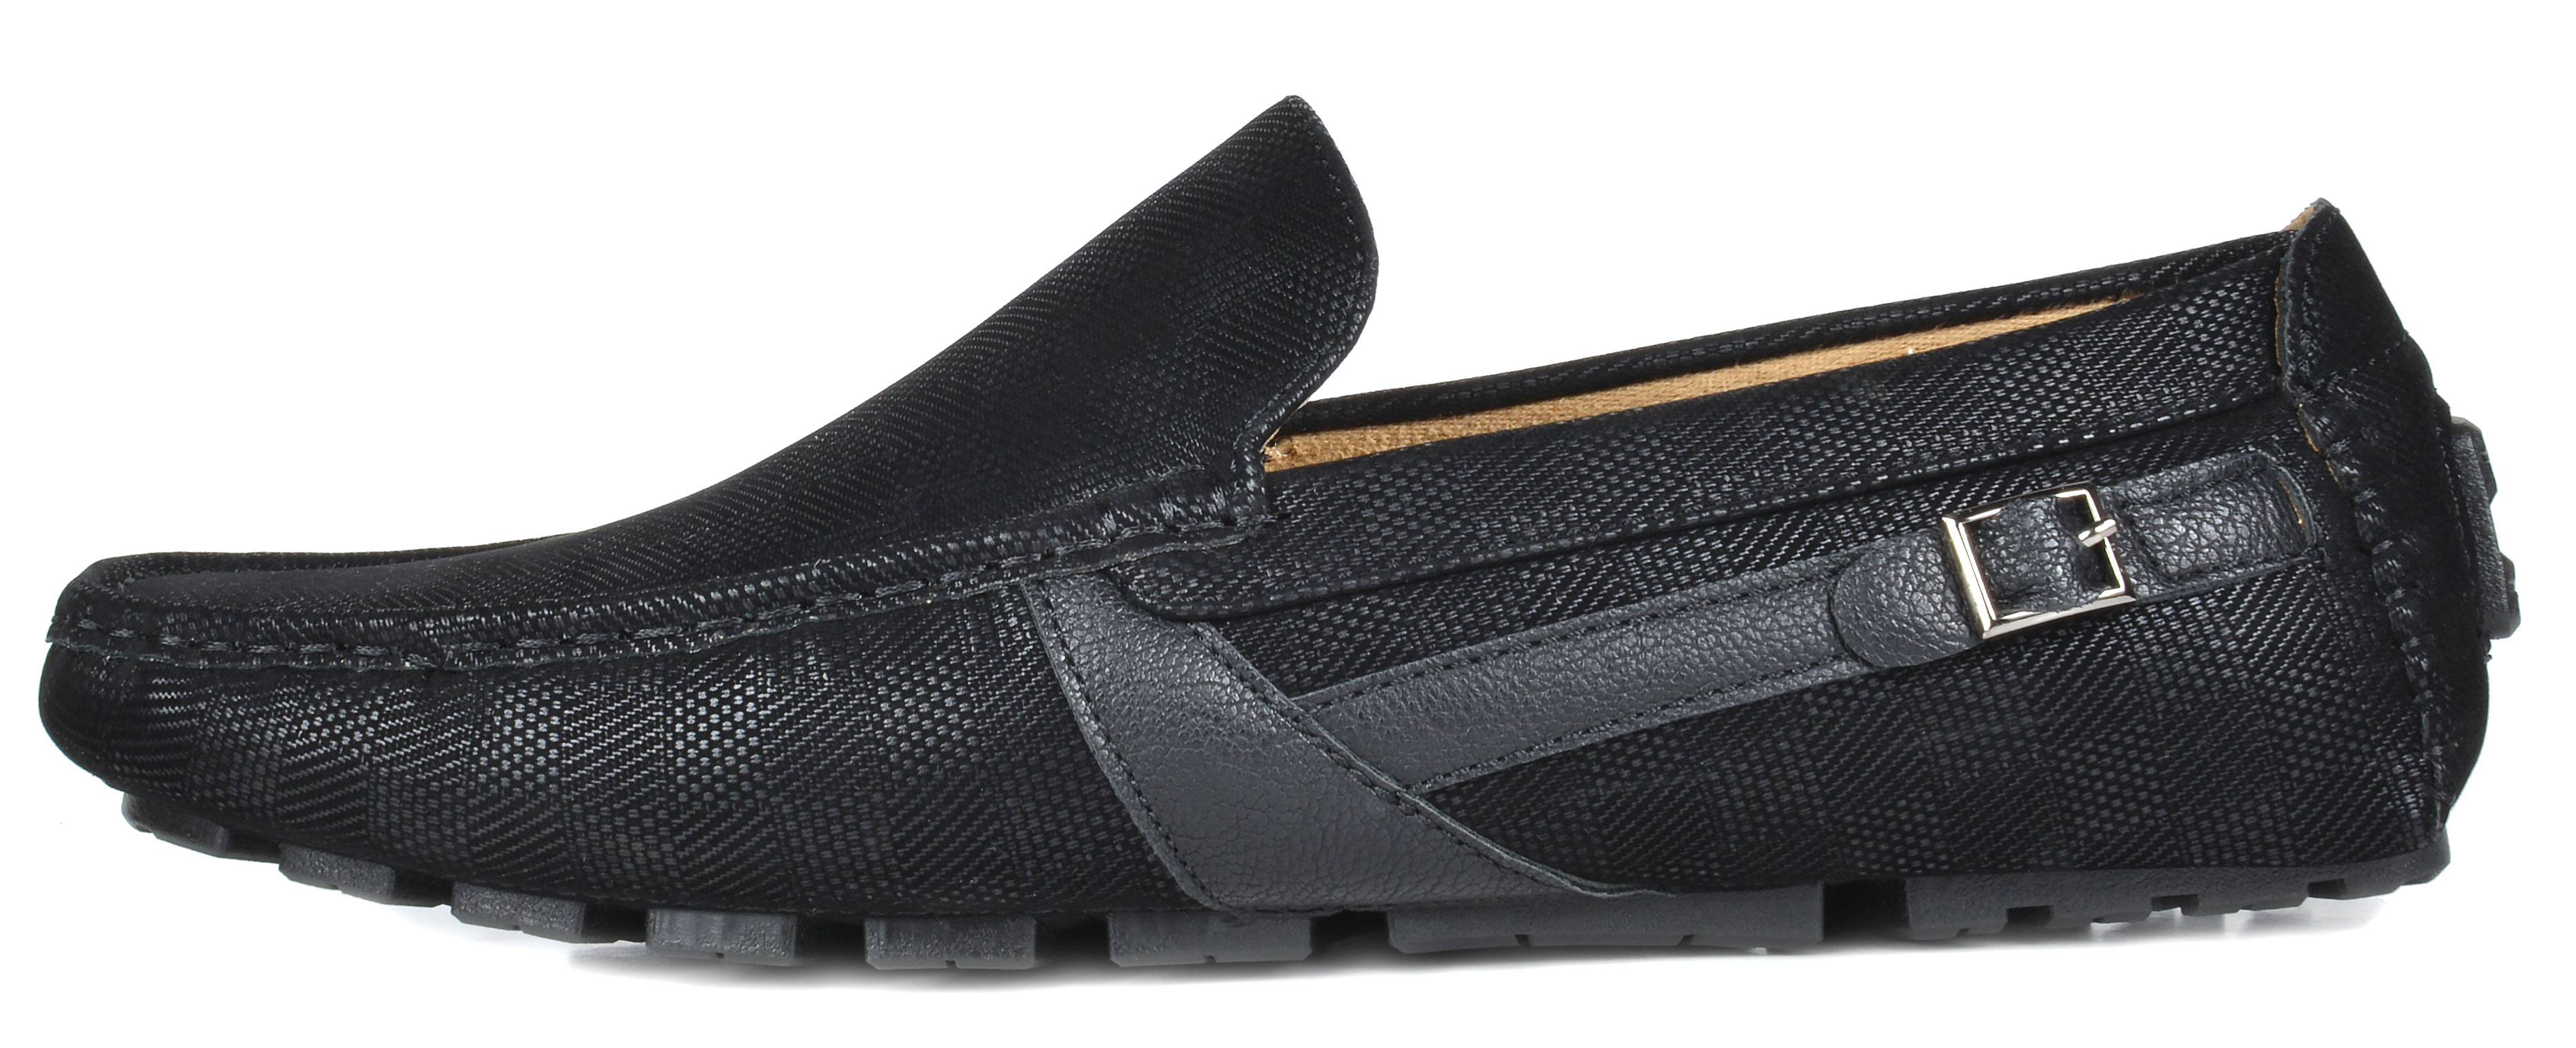 Bruno-Marc-Men-039-s-New-Classic-Fashion-Slip-on-Driving-Casual-Loafers-Boat-Shoes thumbnail 55